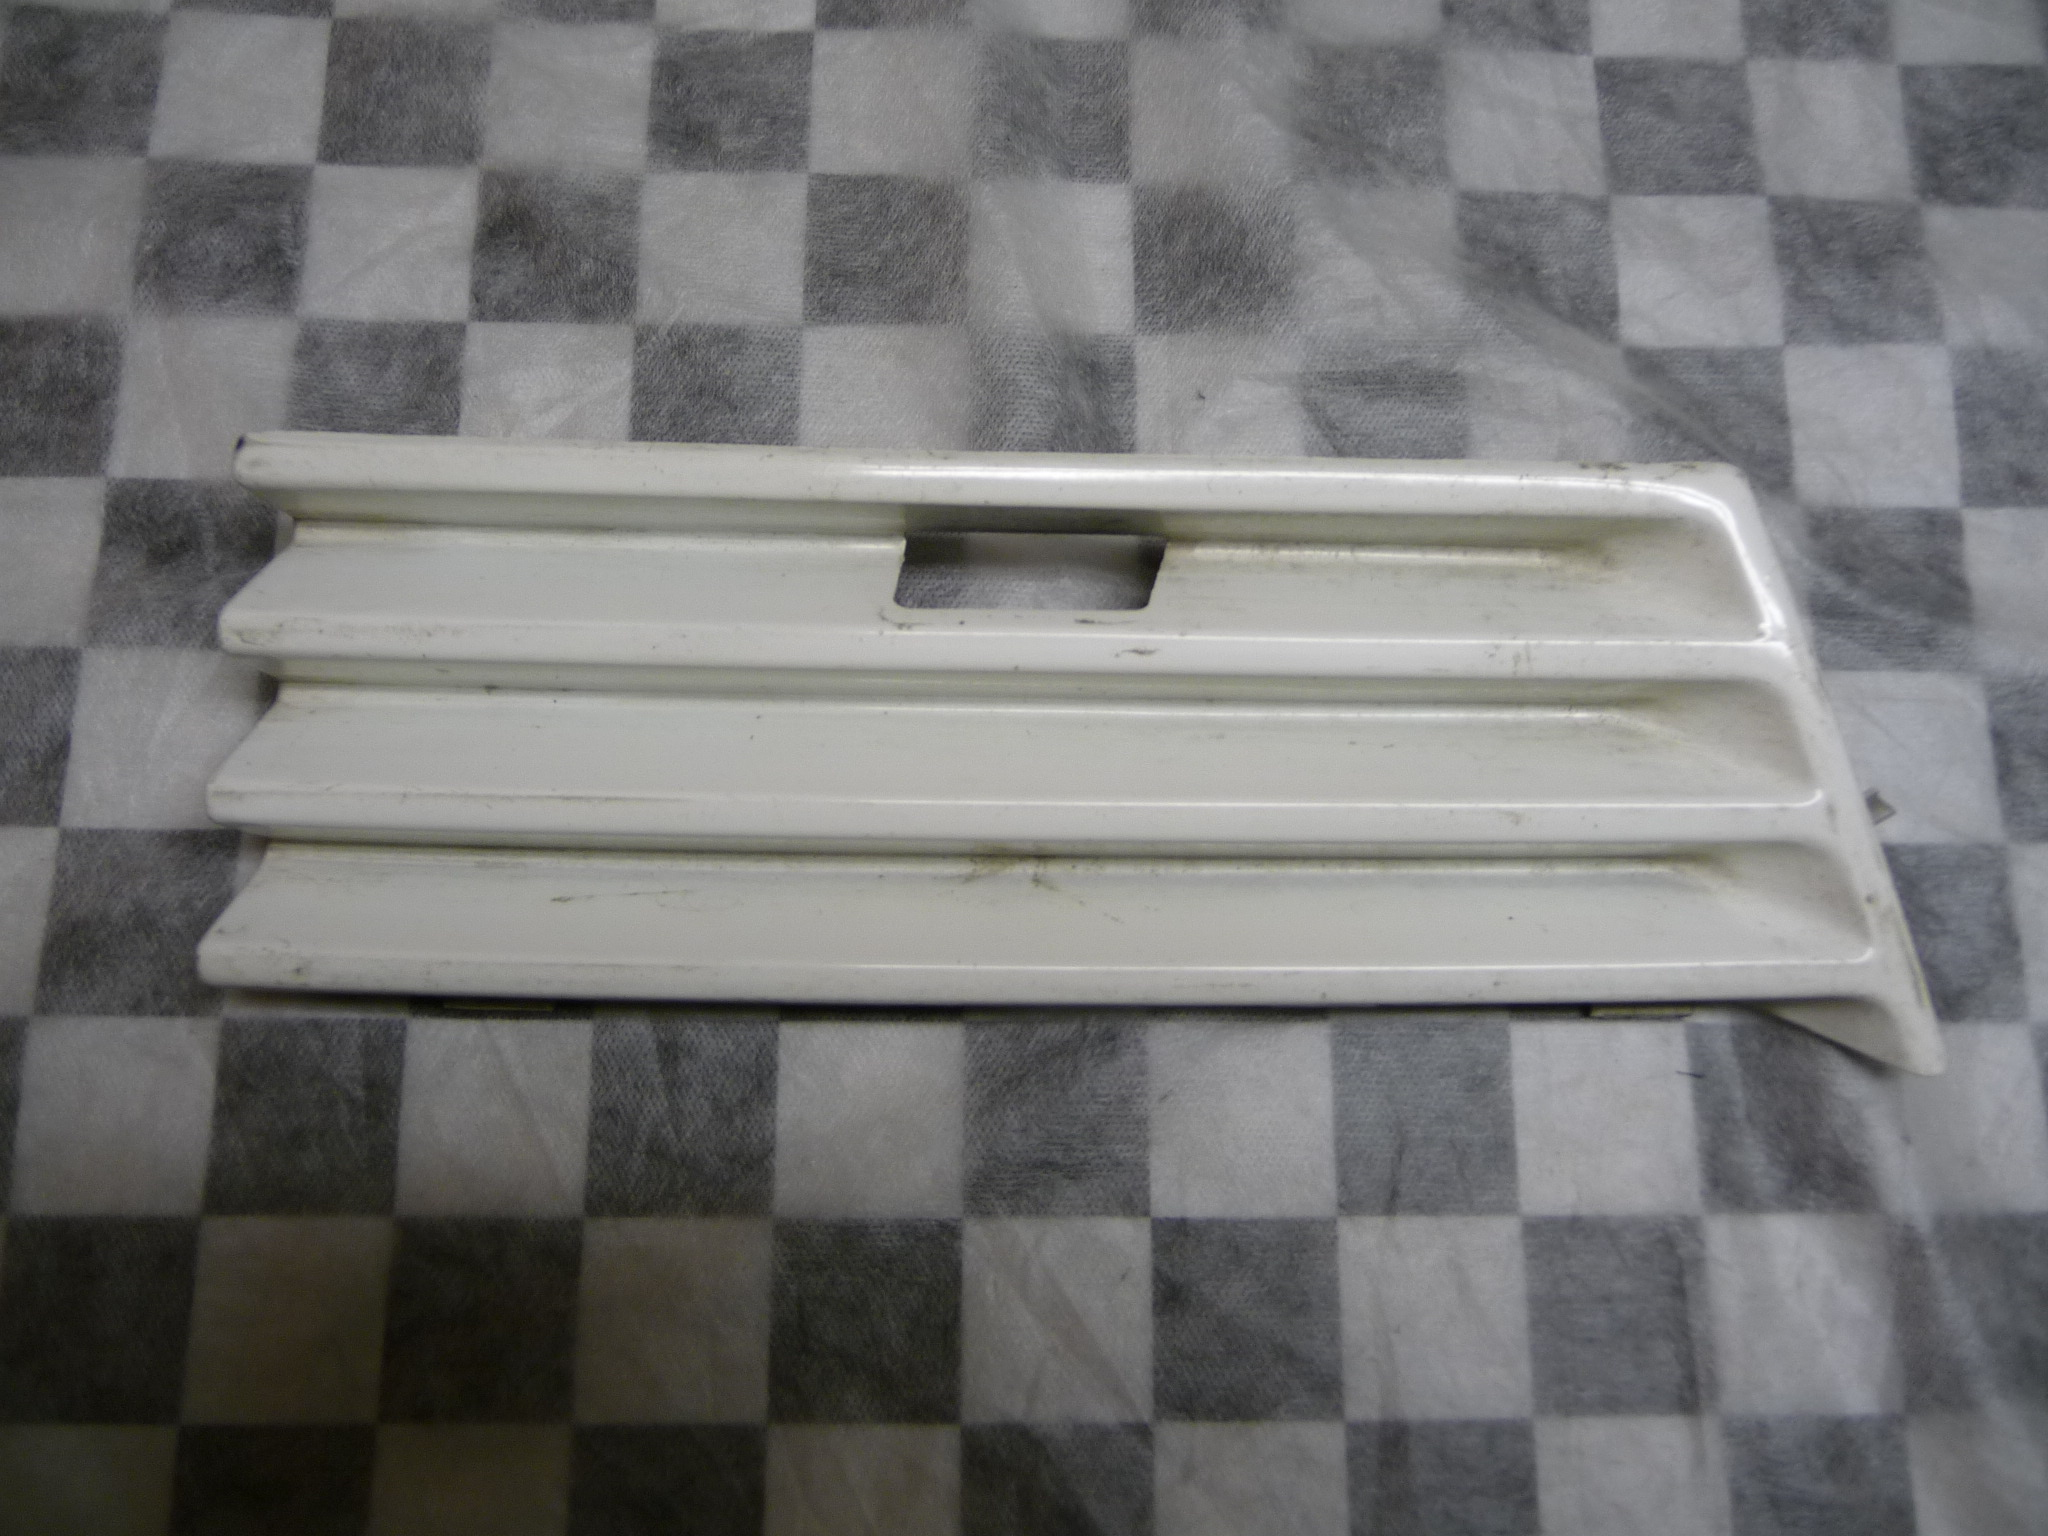 1996 Mercedes Benz W210 E320 Lower Right Hand White Grille, Tow Hook Cover A2108800005 OEM OE